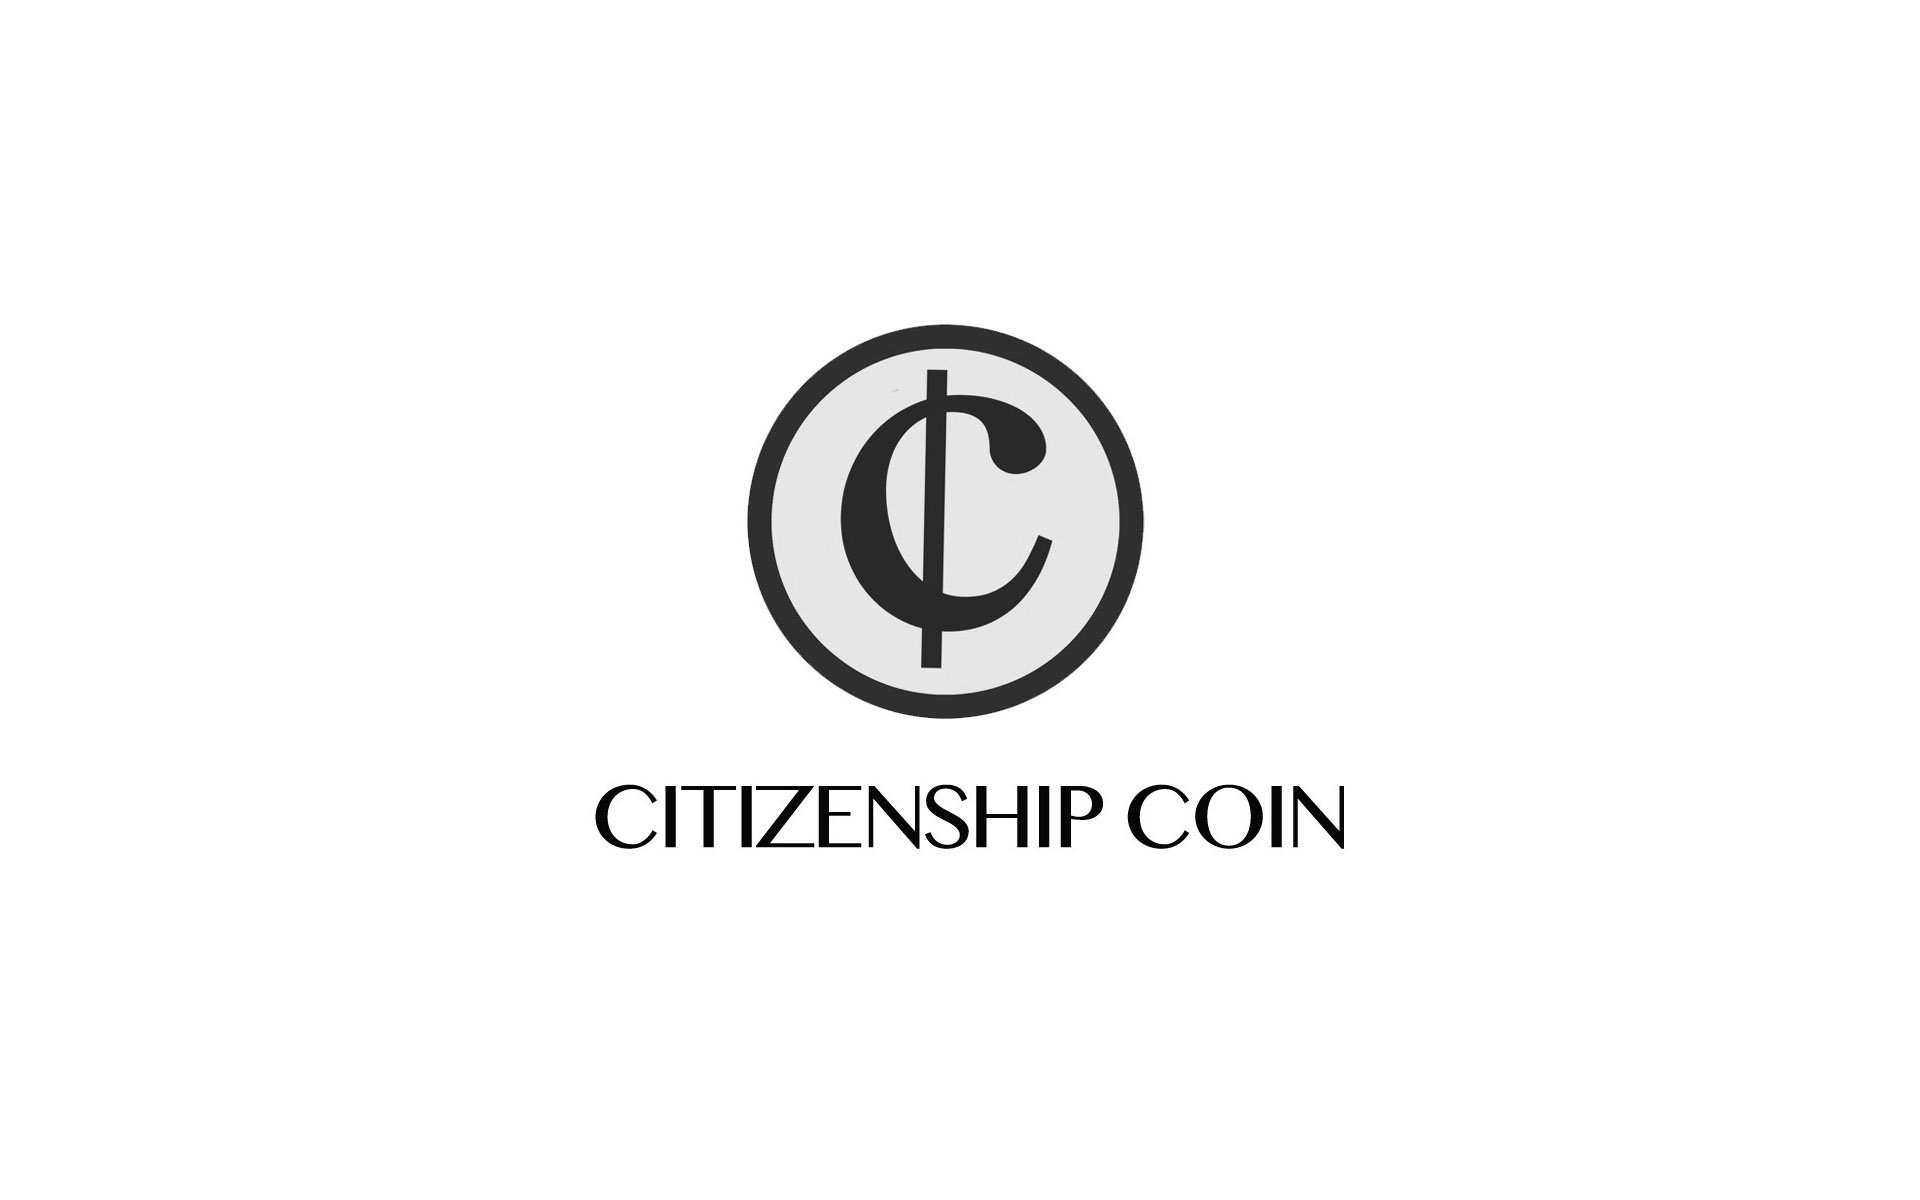 New Cryptocurrency Citizenship Coin Launched